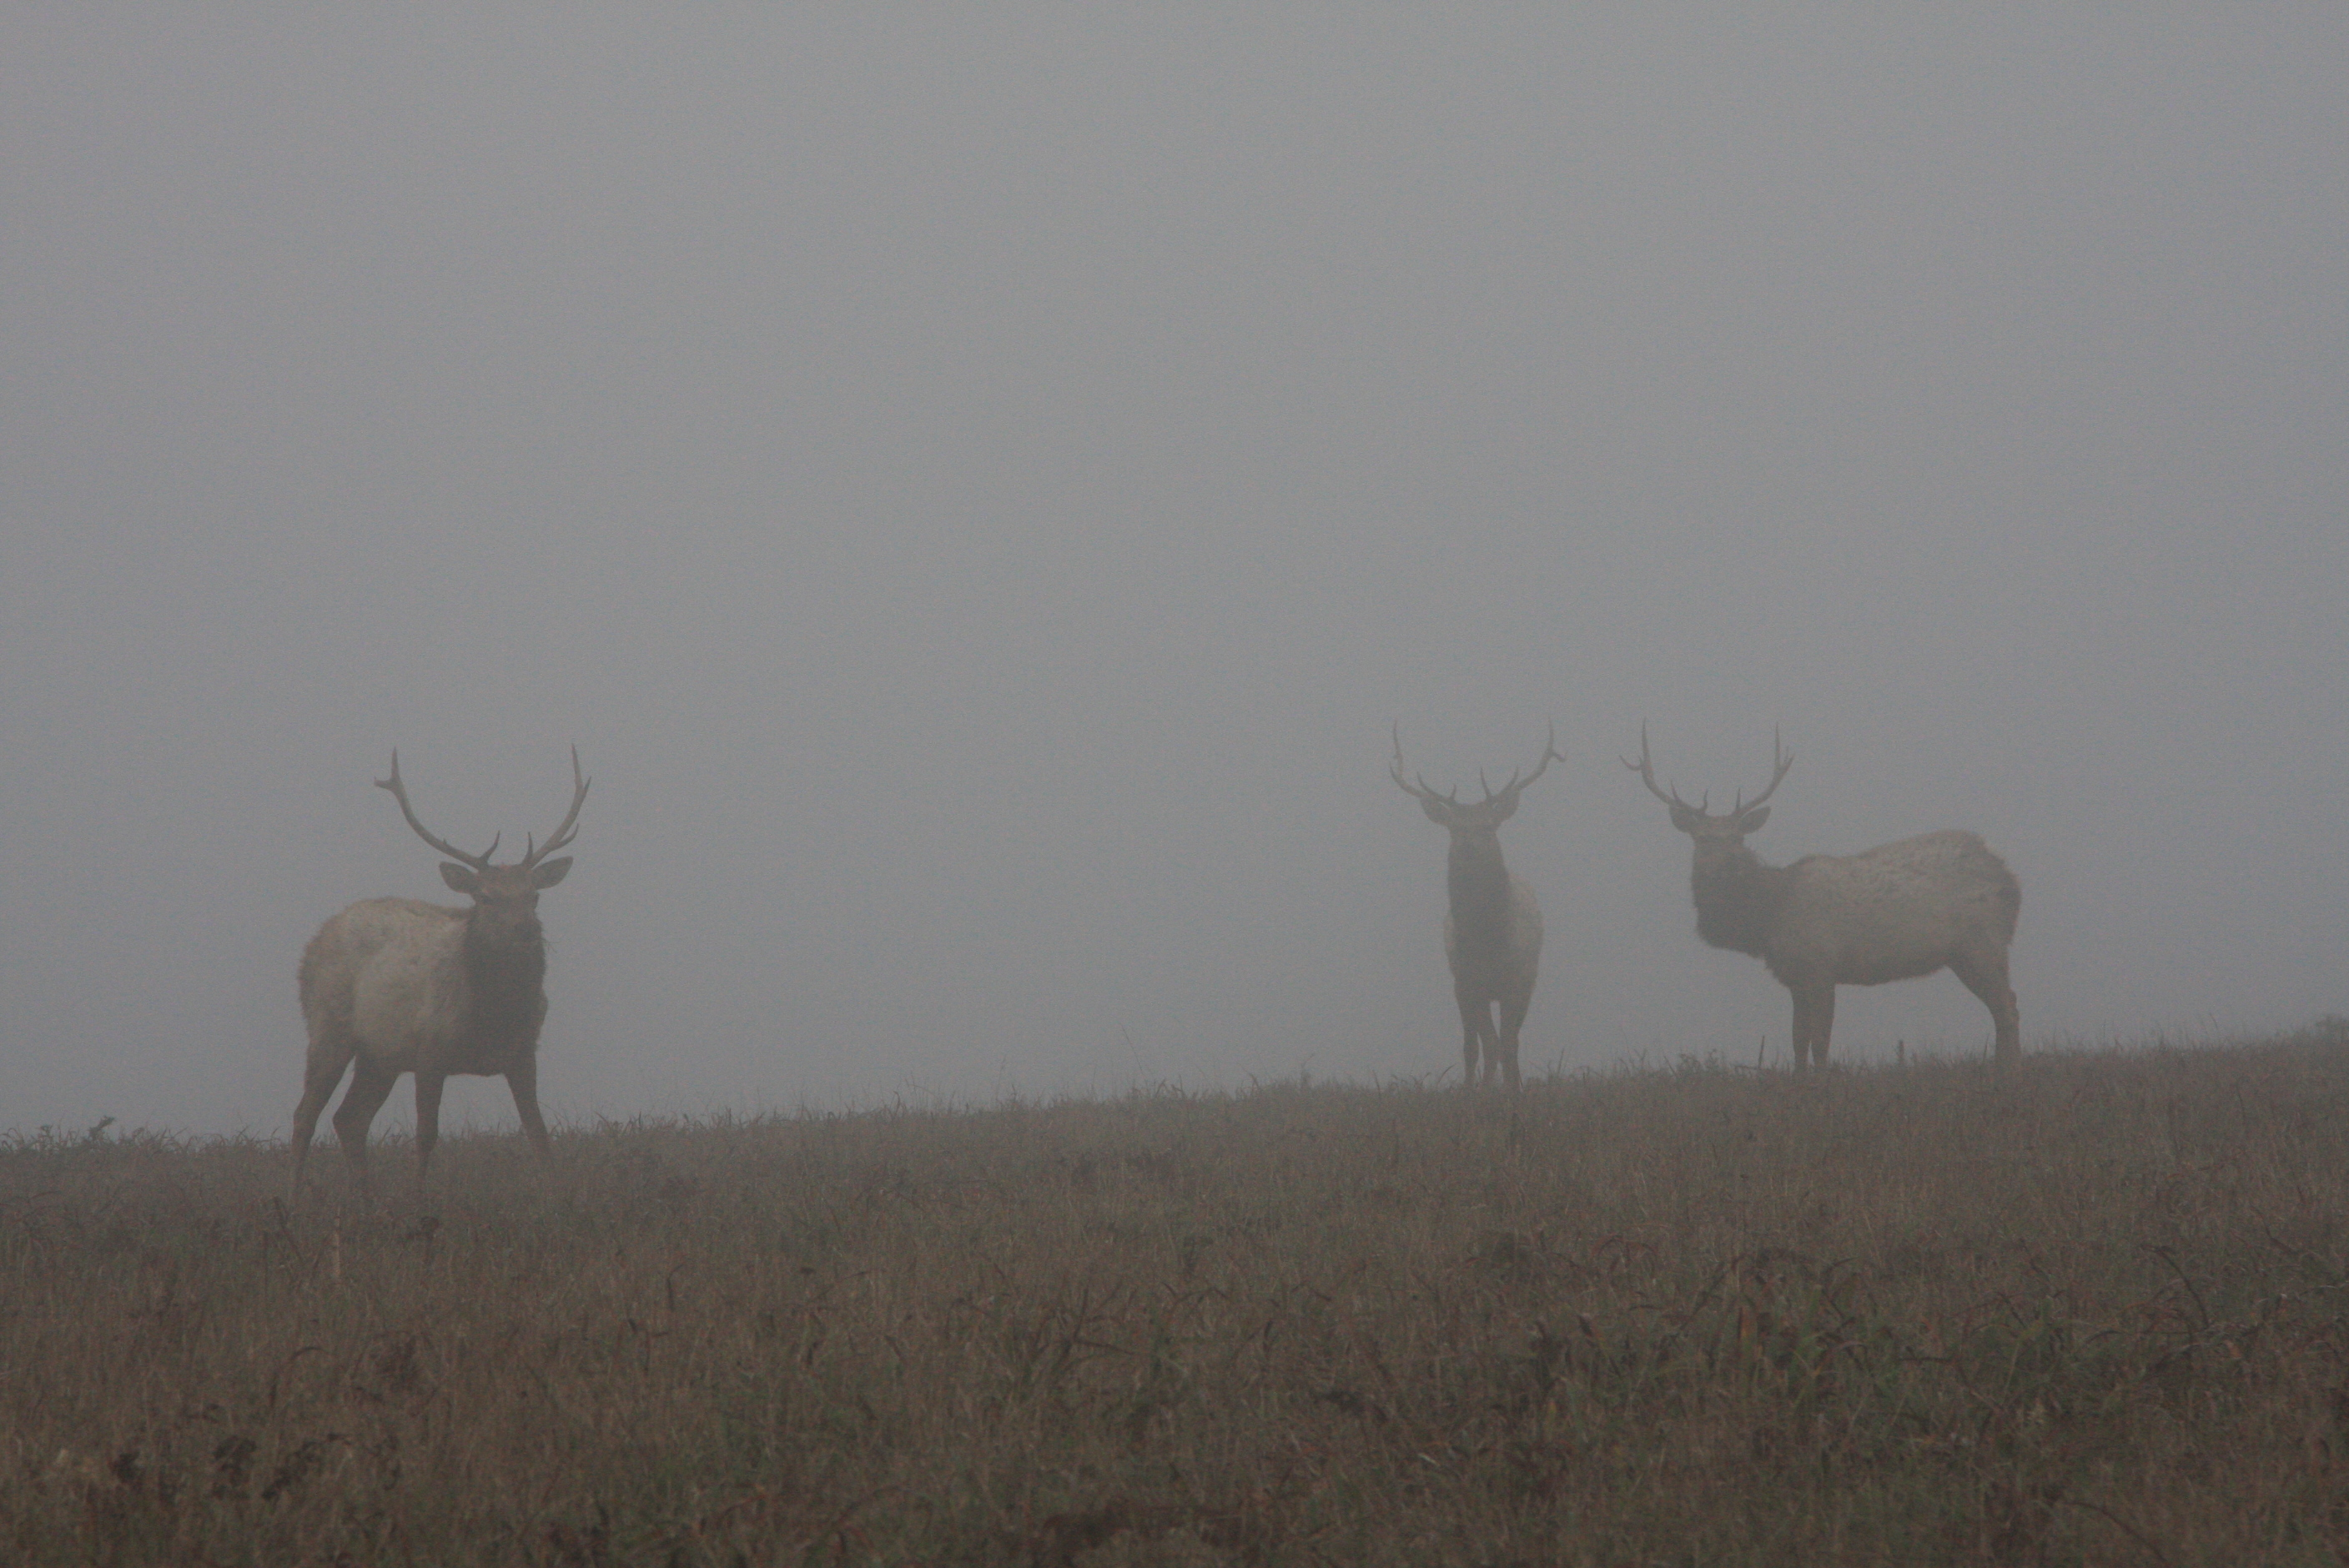 http://upload.wikimedia.org/wikipedia/commons/8/8c/Tule_Elks_in_Fog.jpg